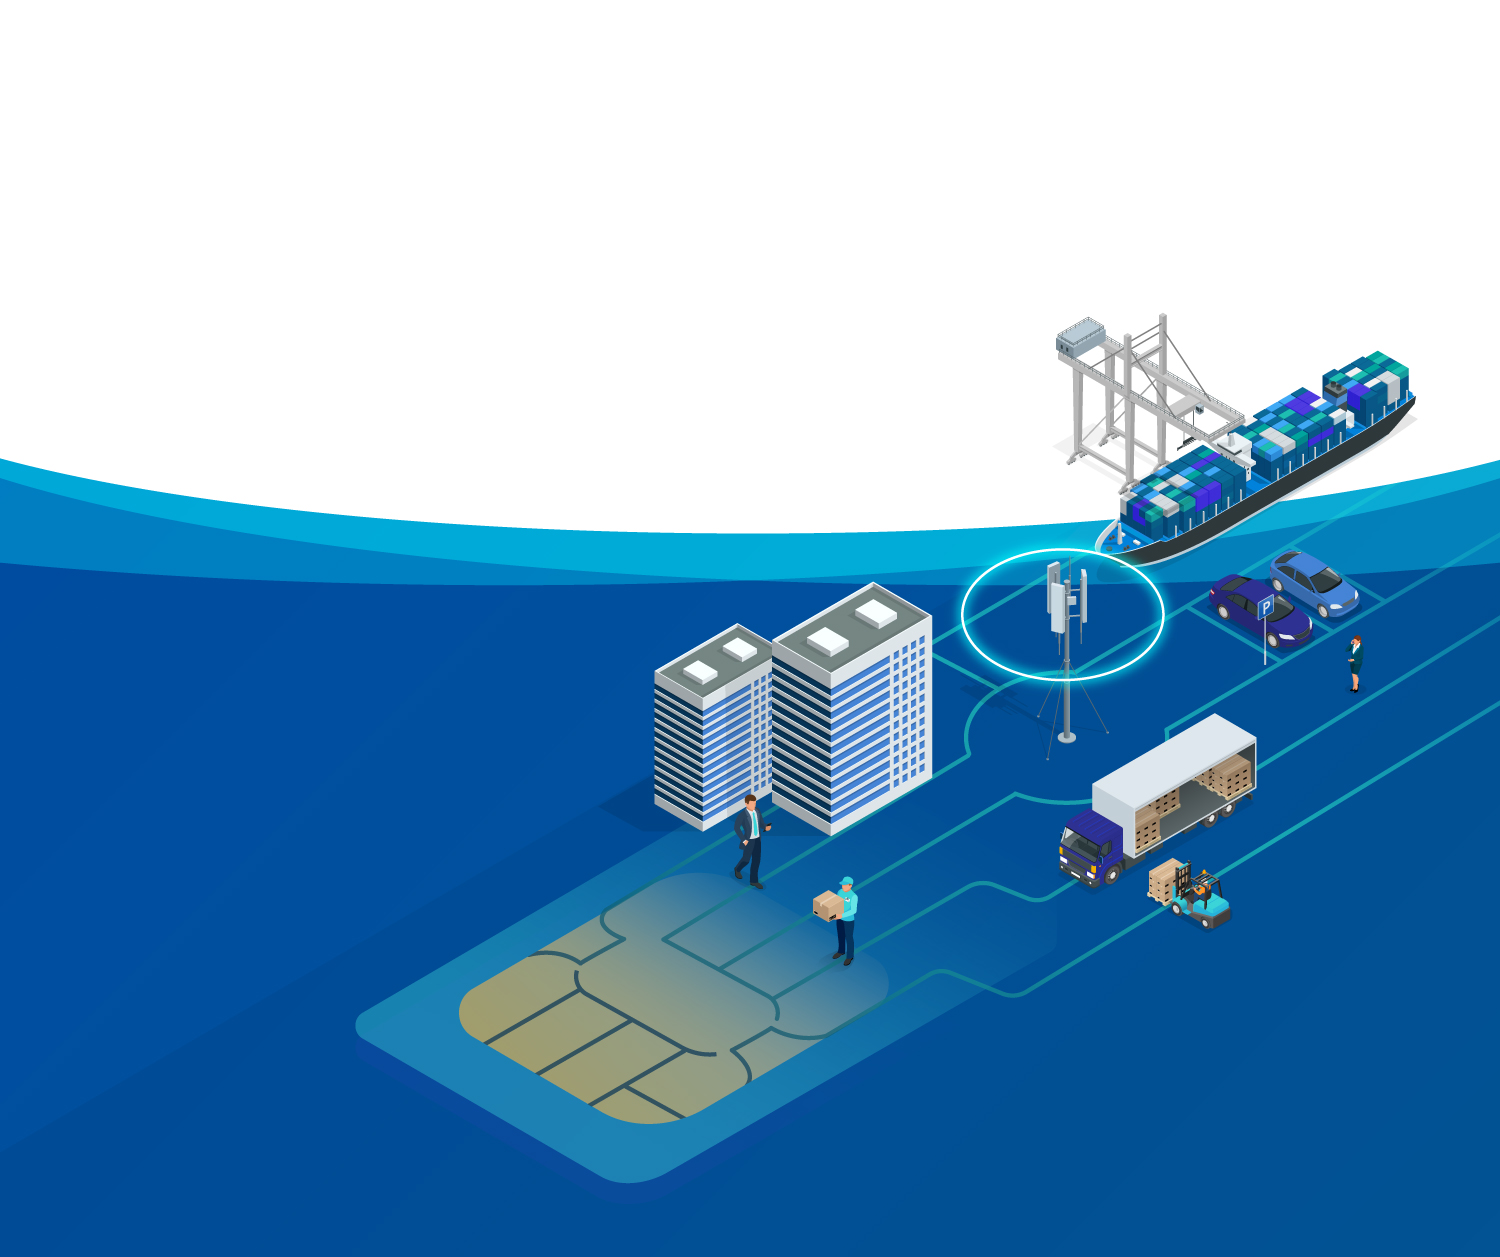 Wavely Mobile Iot